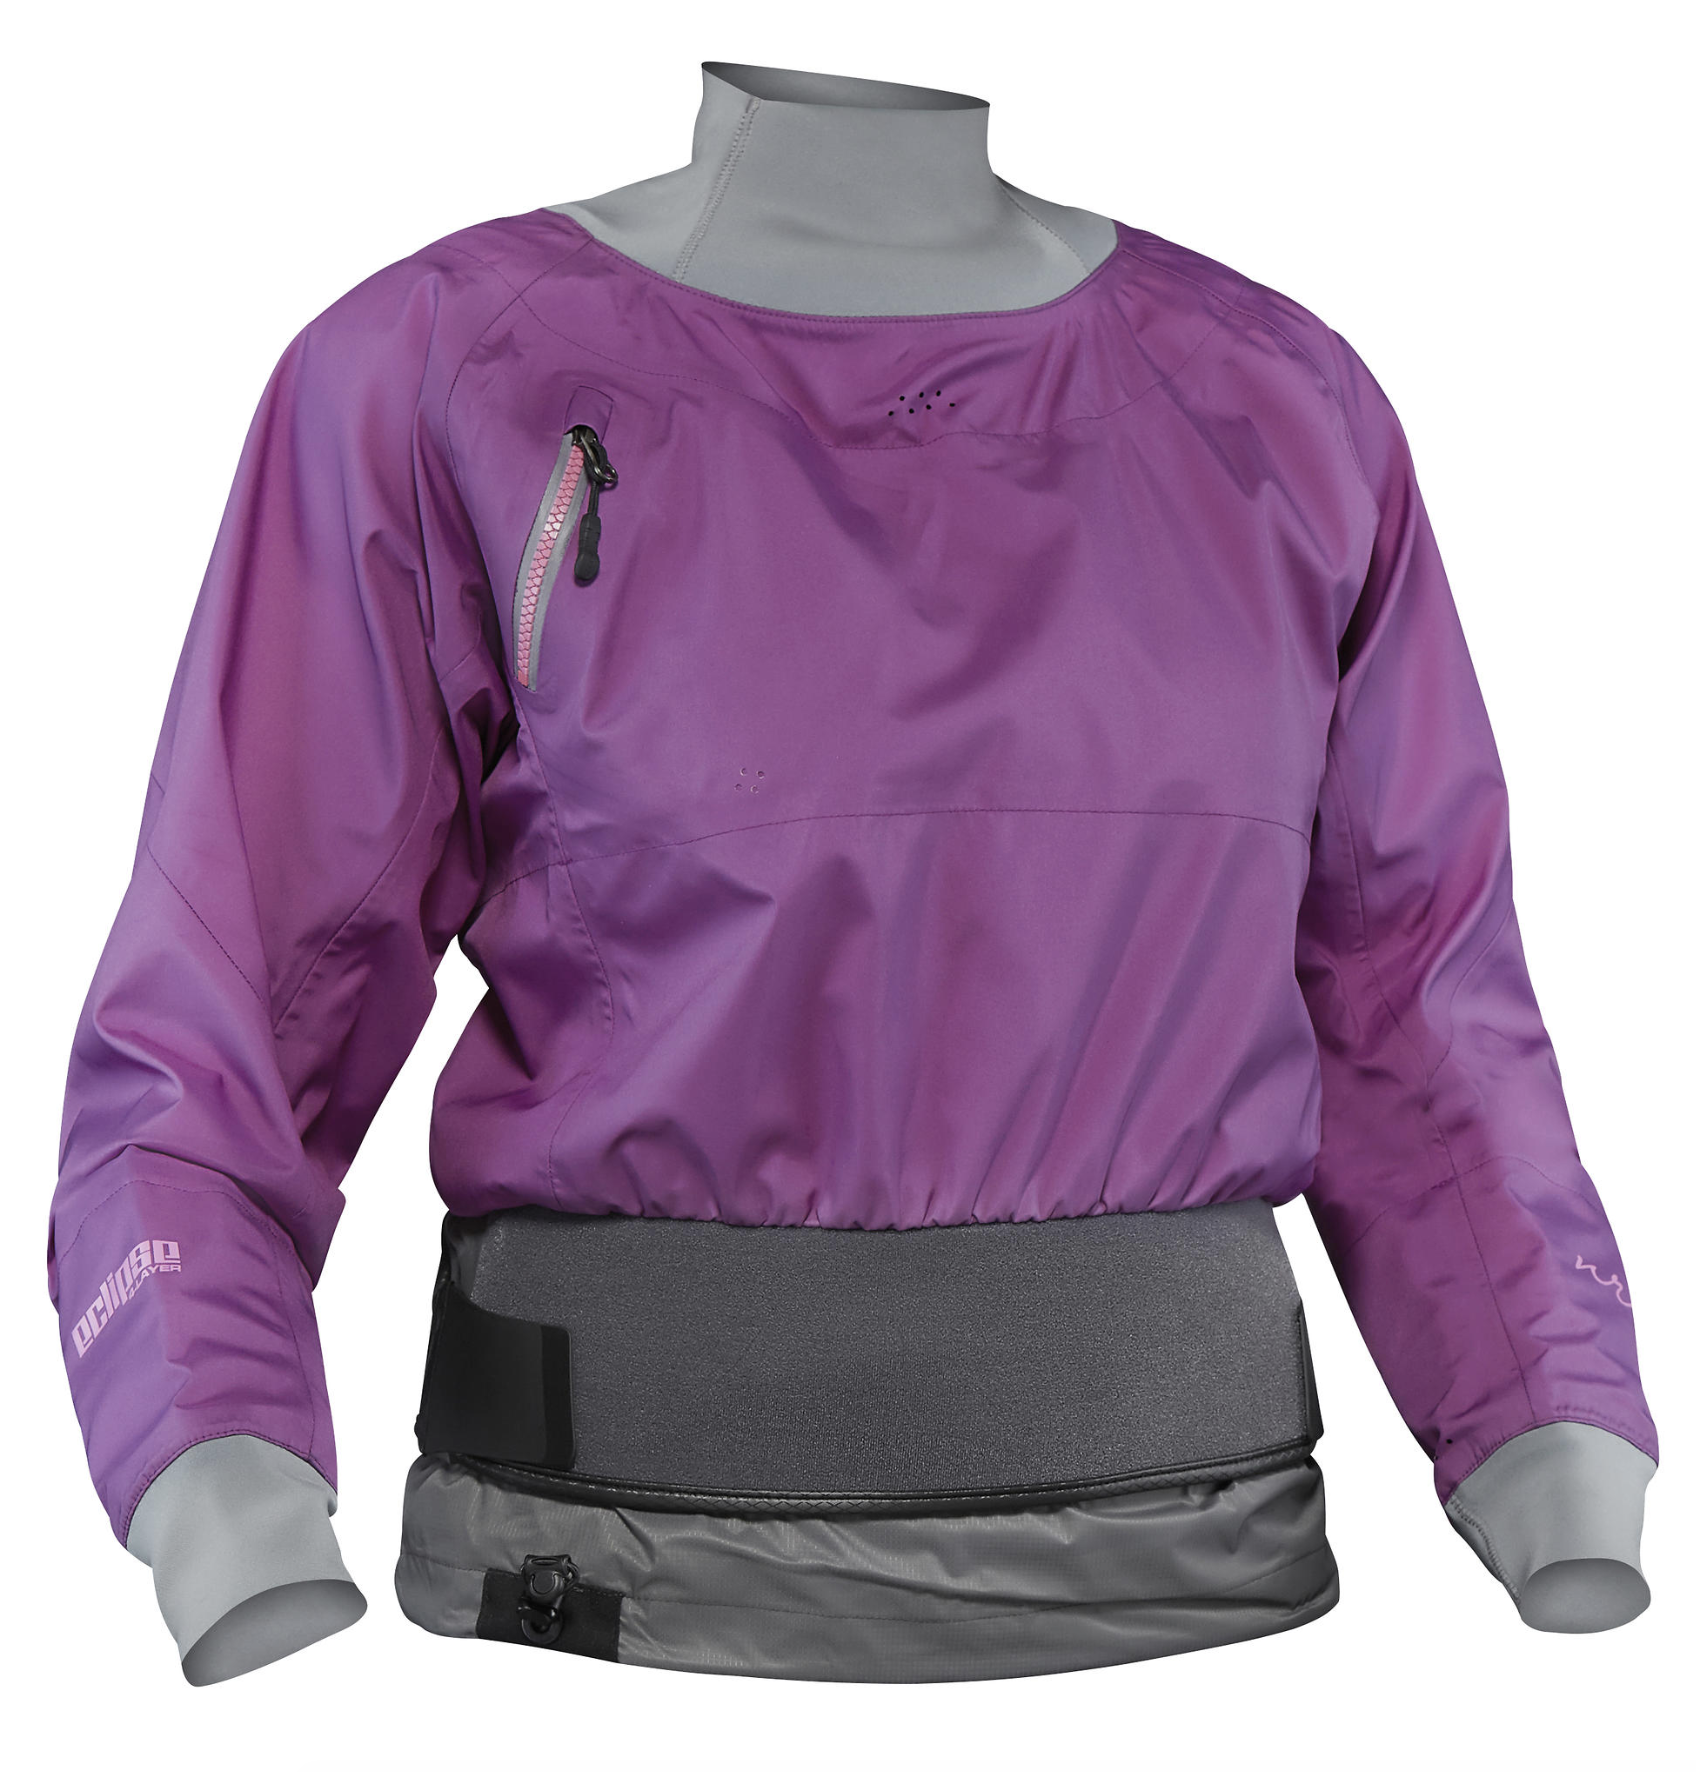 Technical Outerwear: Women's Flux Dry Top by NRS - Image 4833